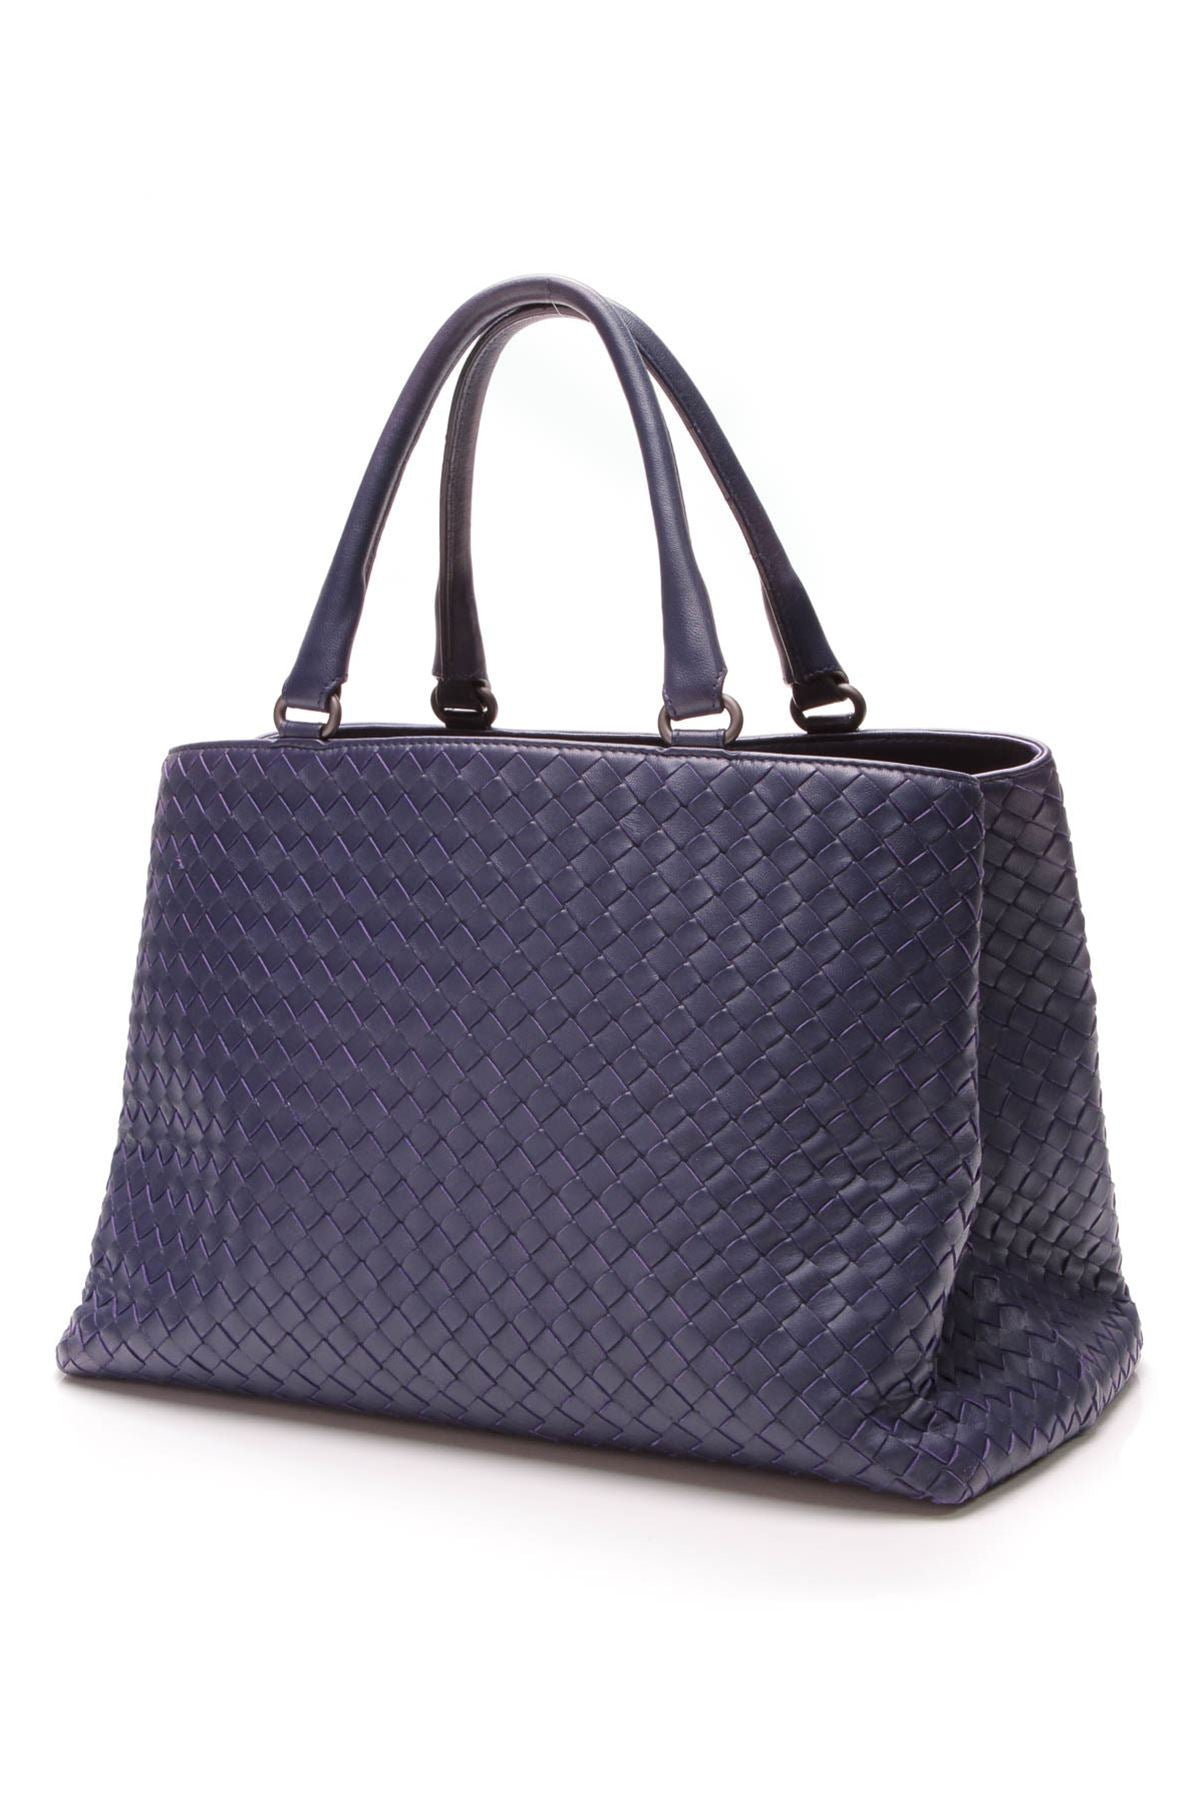 save off 91147 cb622 authentic bottega veneta milano bag in truffle ... 2391742a972d9